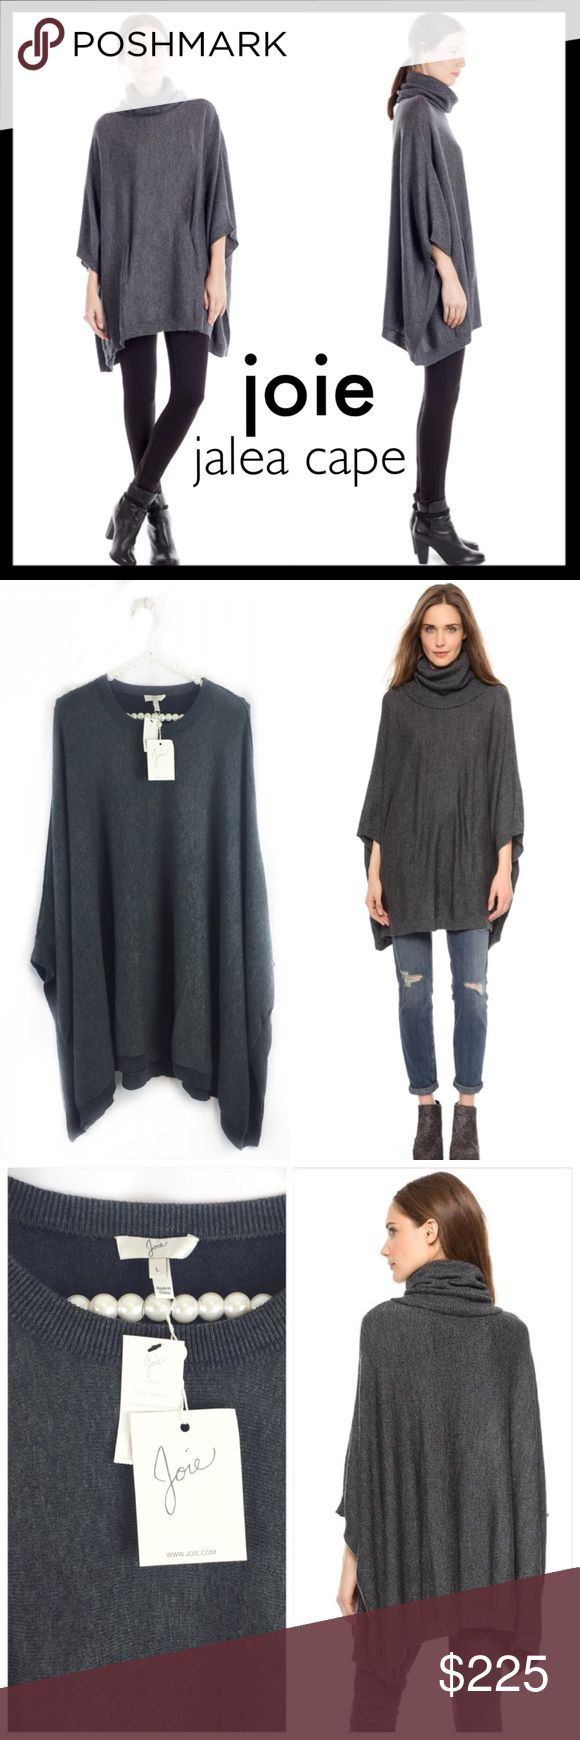 joie // NWT jalea cape poncho • dark gray A lightweight, marled cape feels cozy with a loose, draped cut. Double-layered trim forms the turtleneck. Ribbed edges. Slit arm openings. Pouch front pocket. 100% deliciously soft merino wool. An absolute wardrobe essential for fall and winter. Brand new with tags. Joie Sweaters Cowl & Turtlenecks